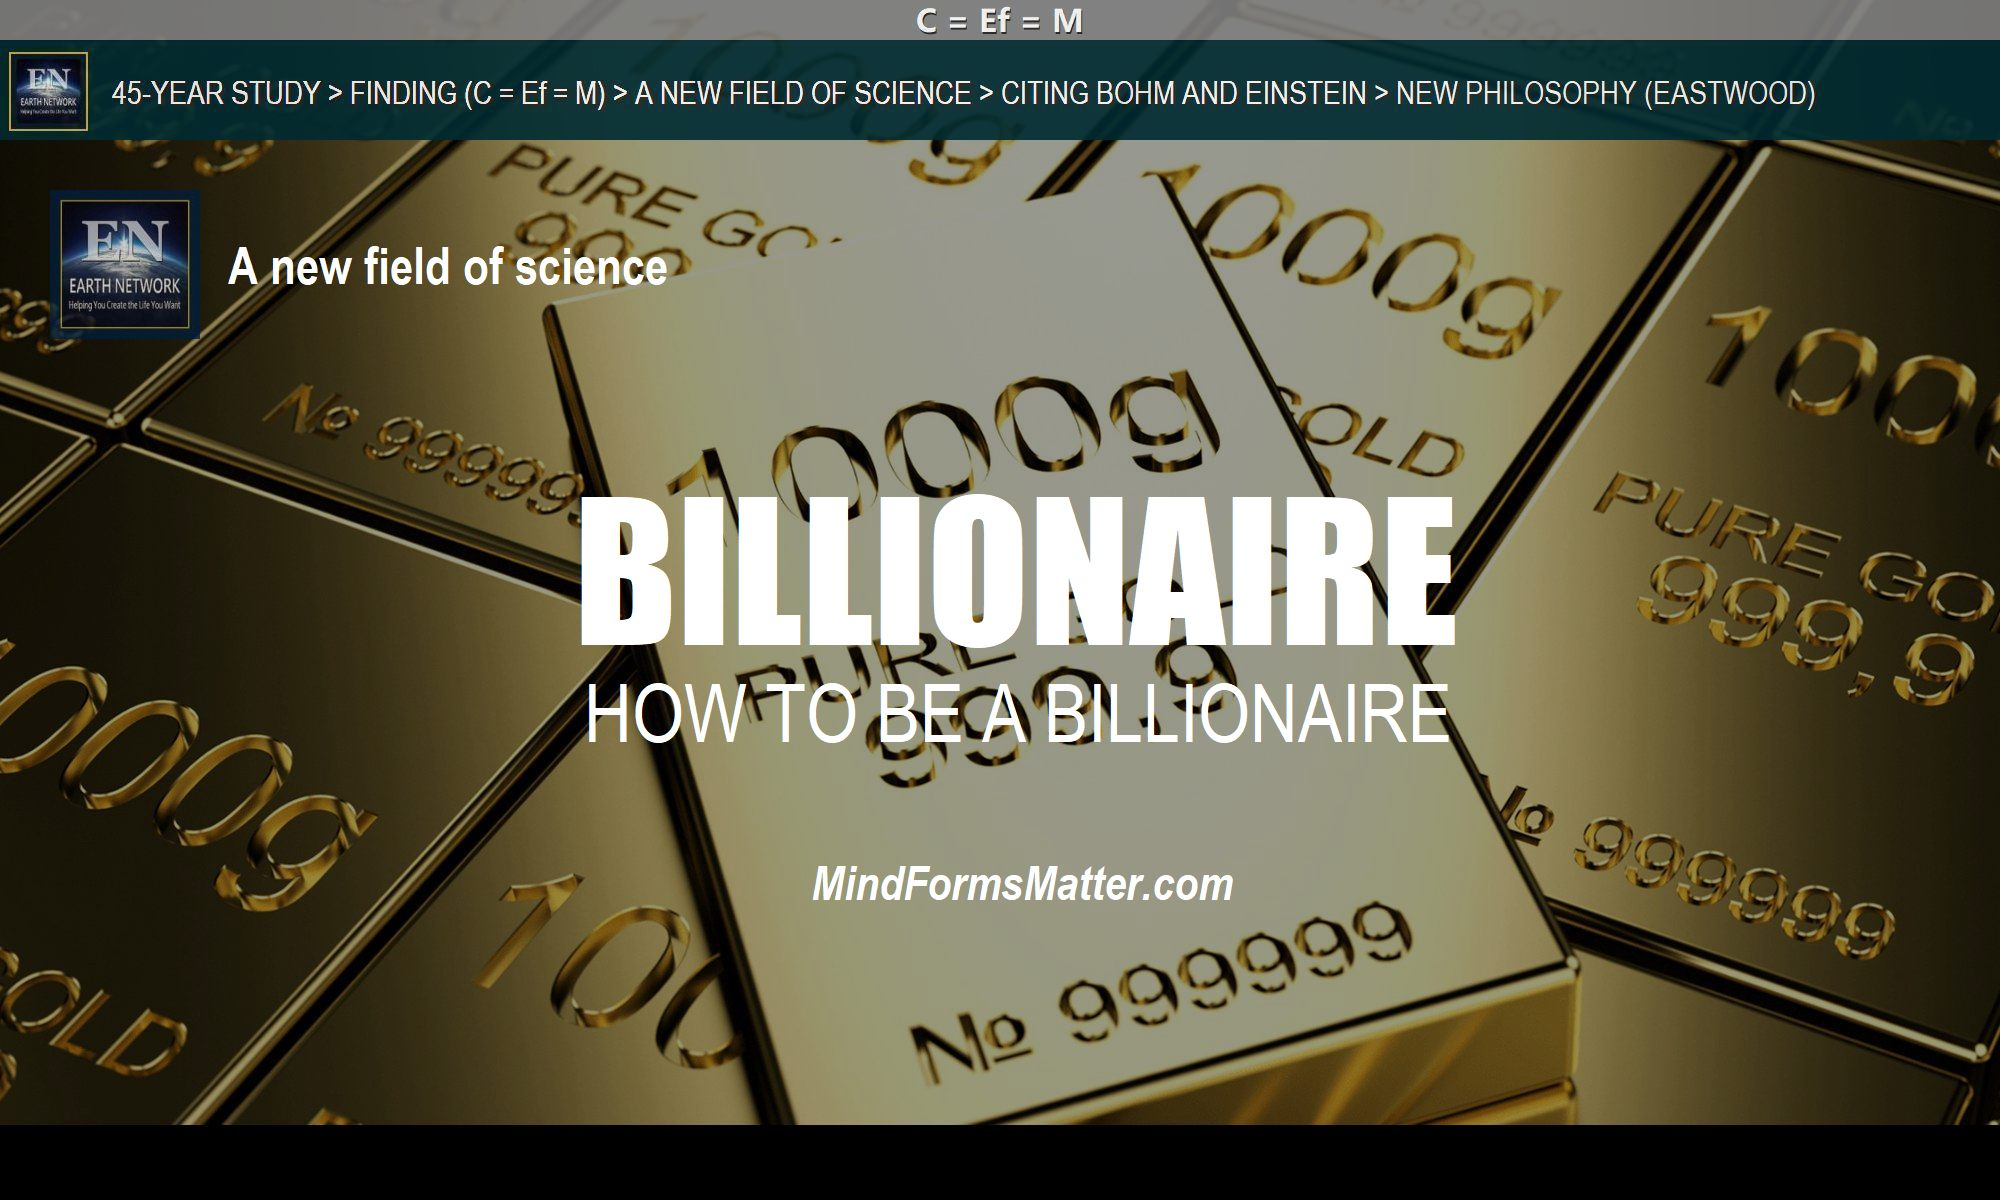 Pure gold bars depicts how you can think like a billionaire to be a billionaire